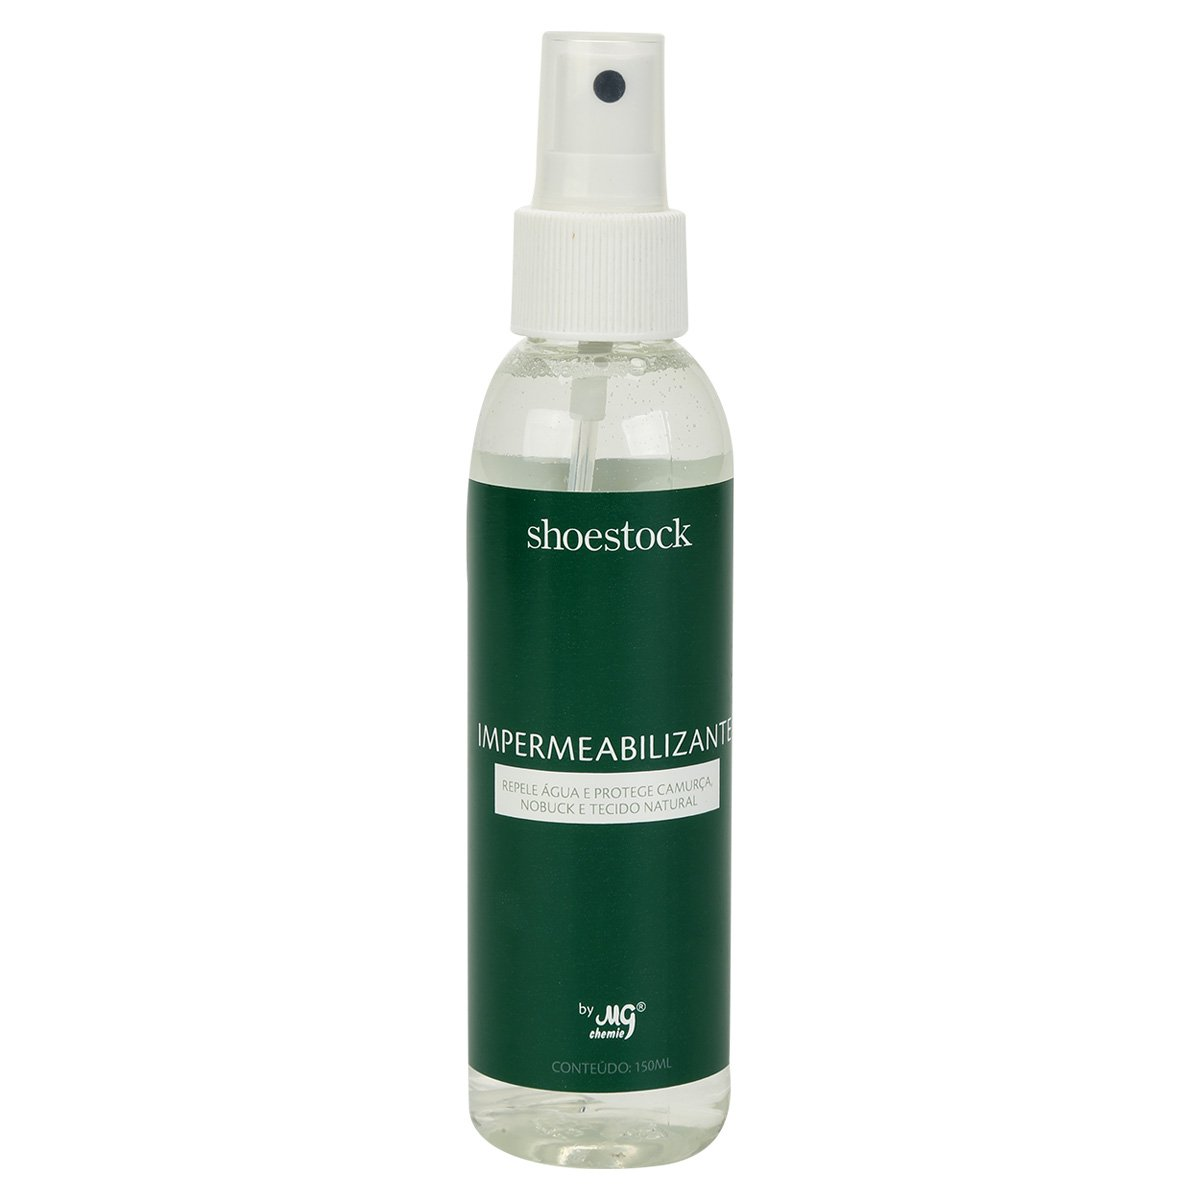 Impermeabilizante Shoestock 150ml